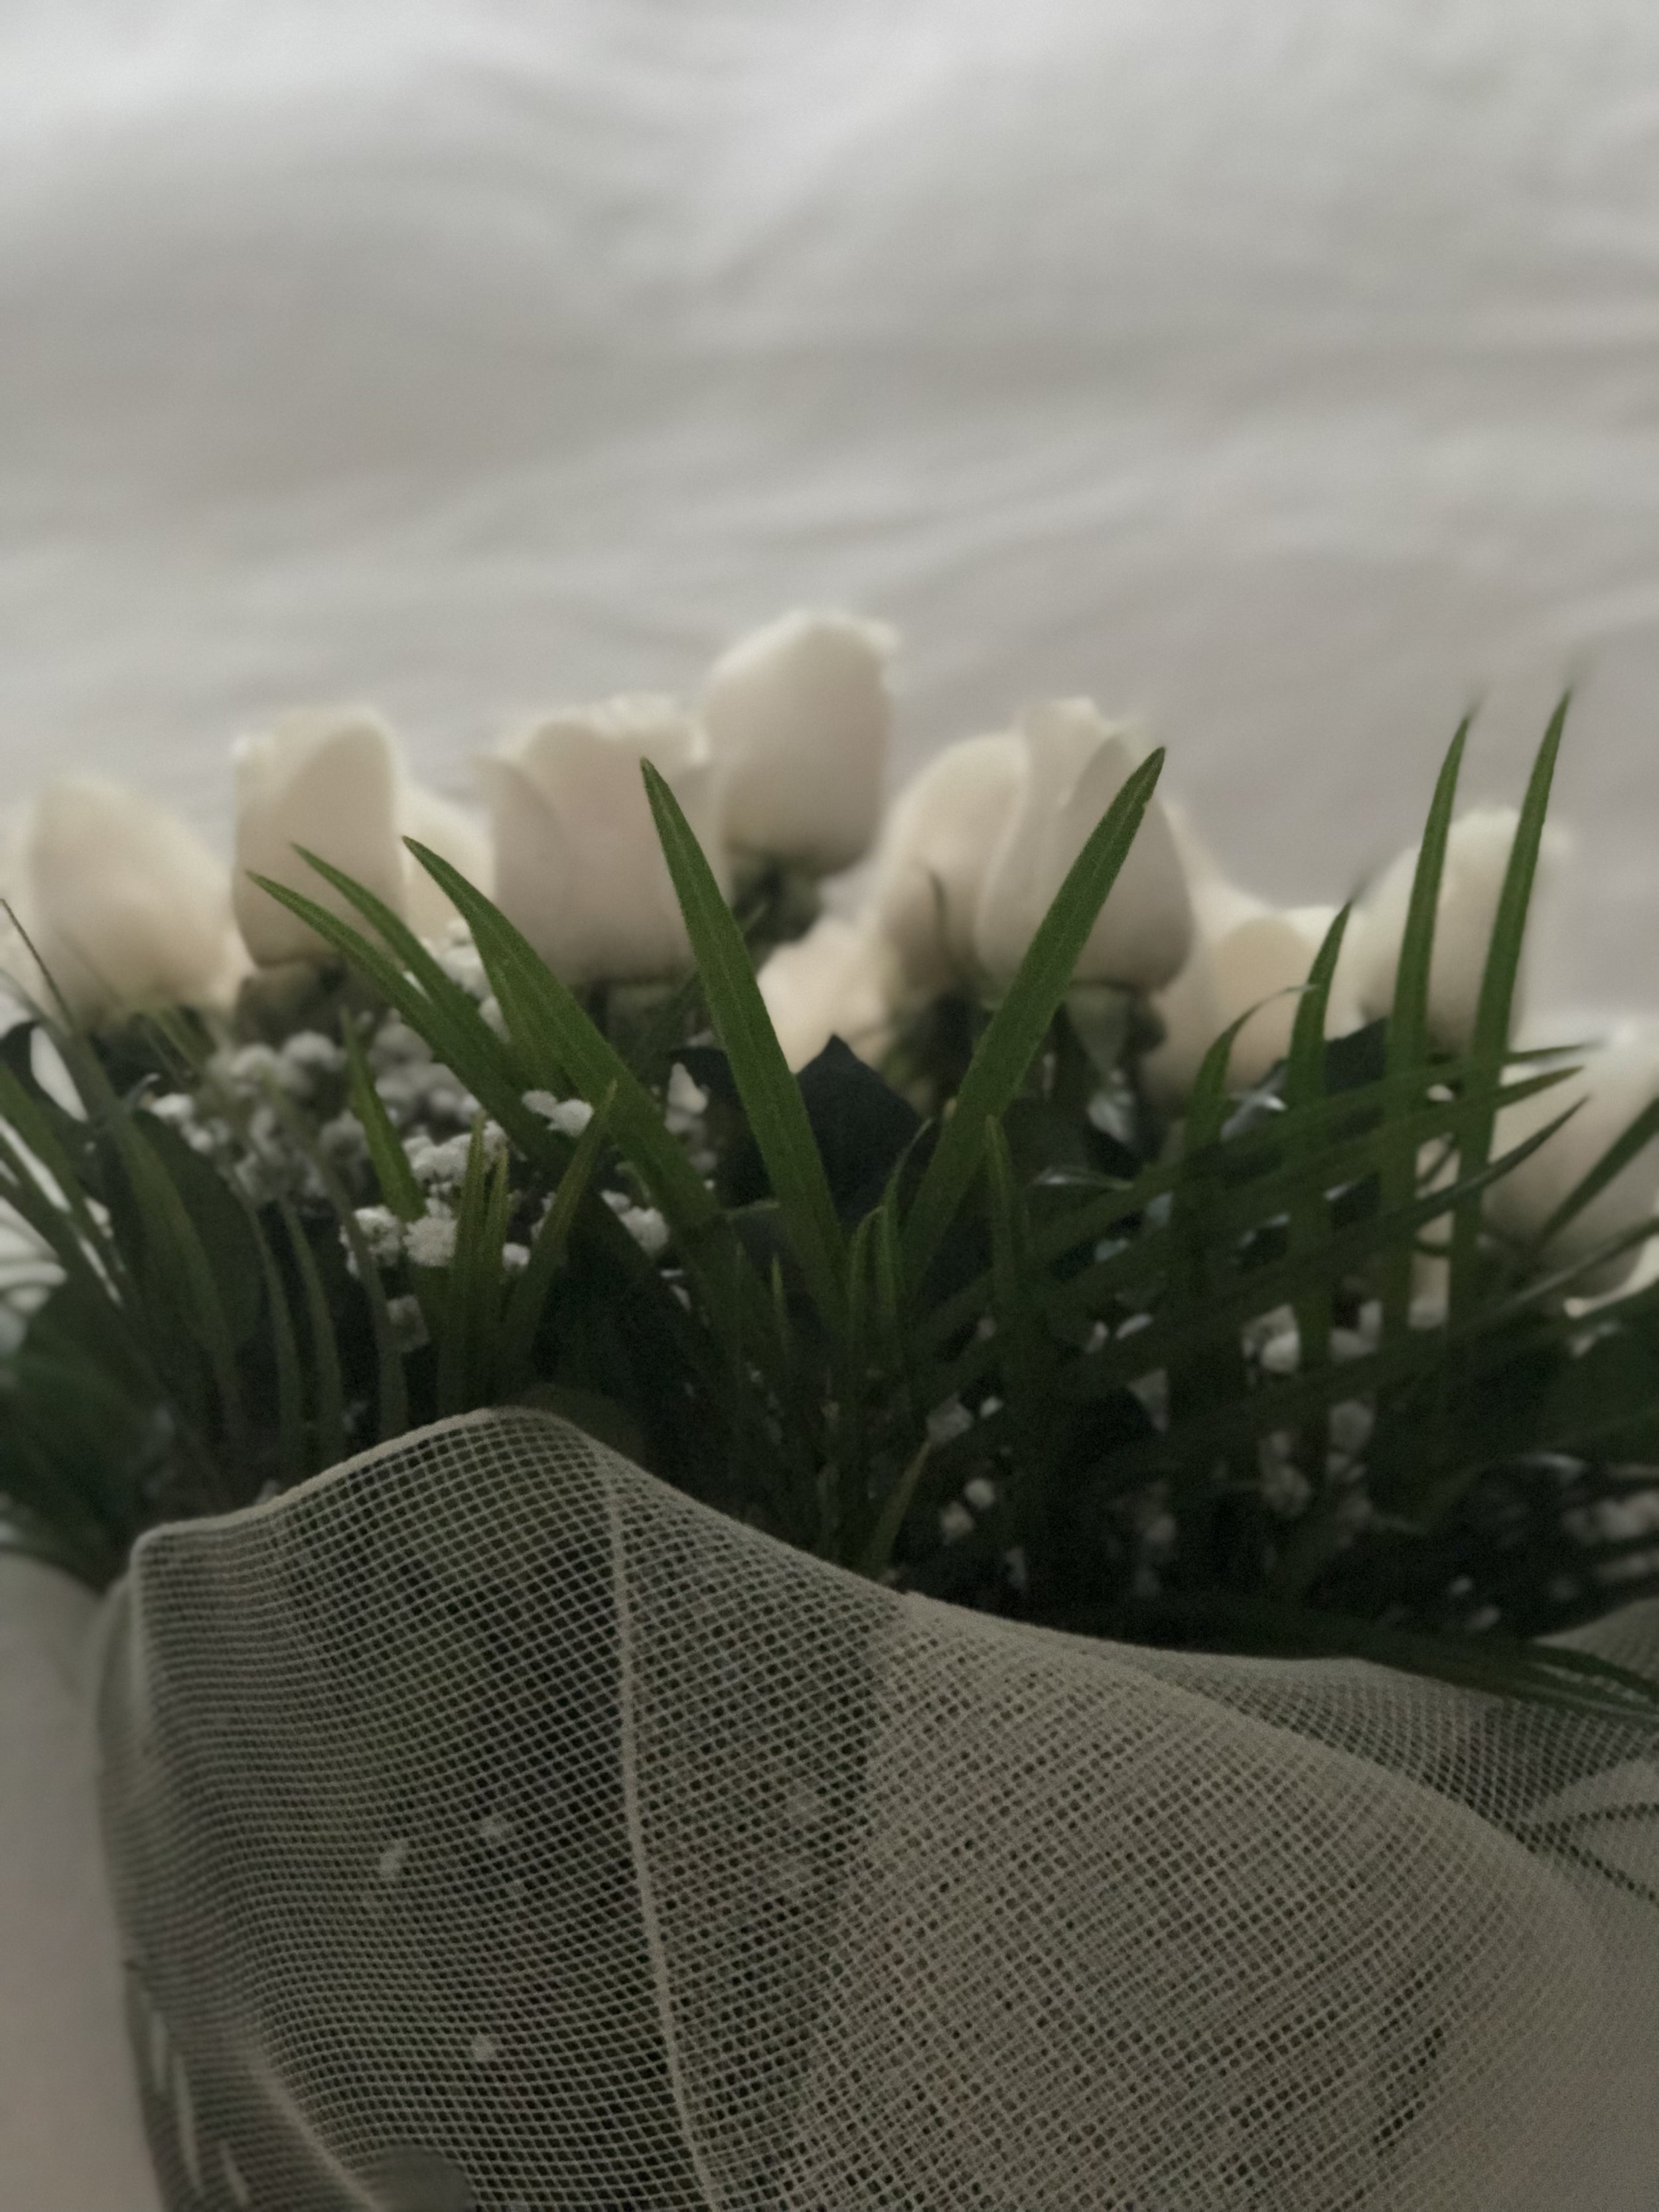 White roses, one of two flower bouquets El received for her birthday